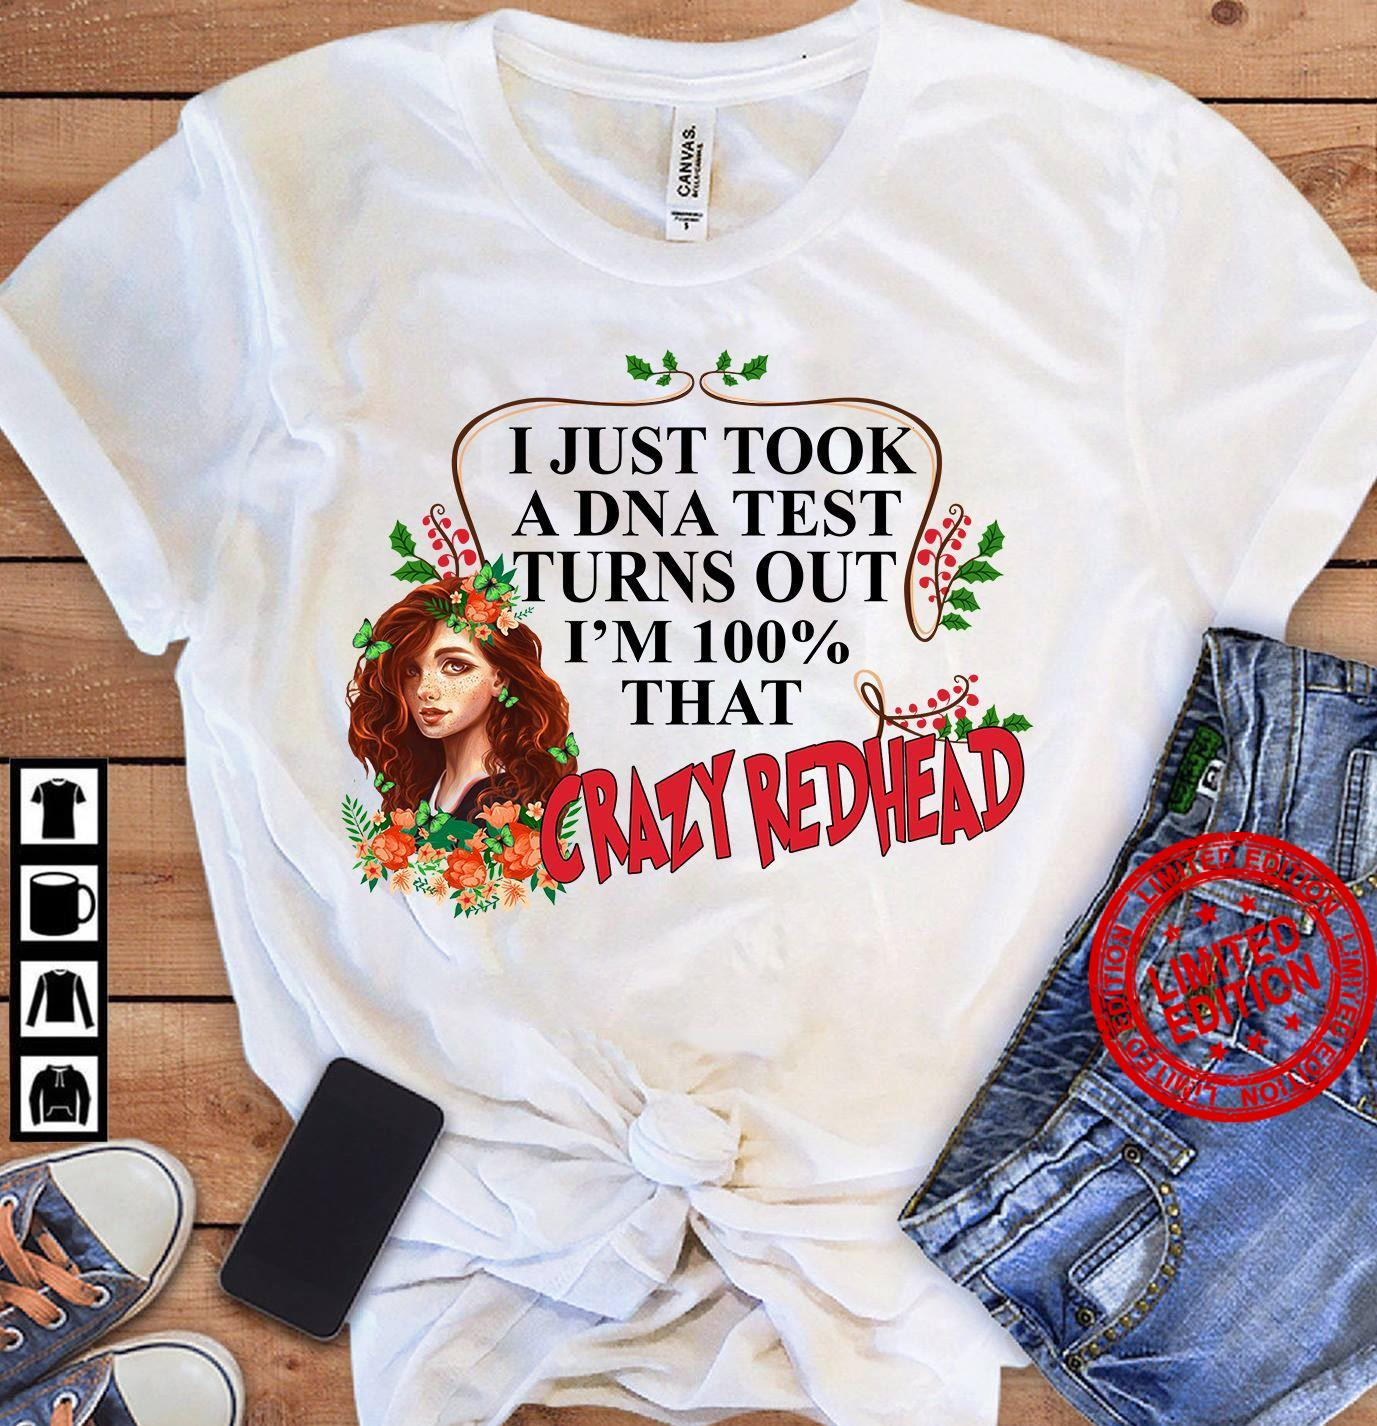 I Just Took A DNA Test Turns Out I'm 100% That Crazy Redhead Shirt